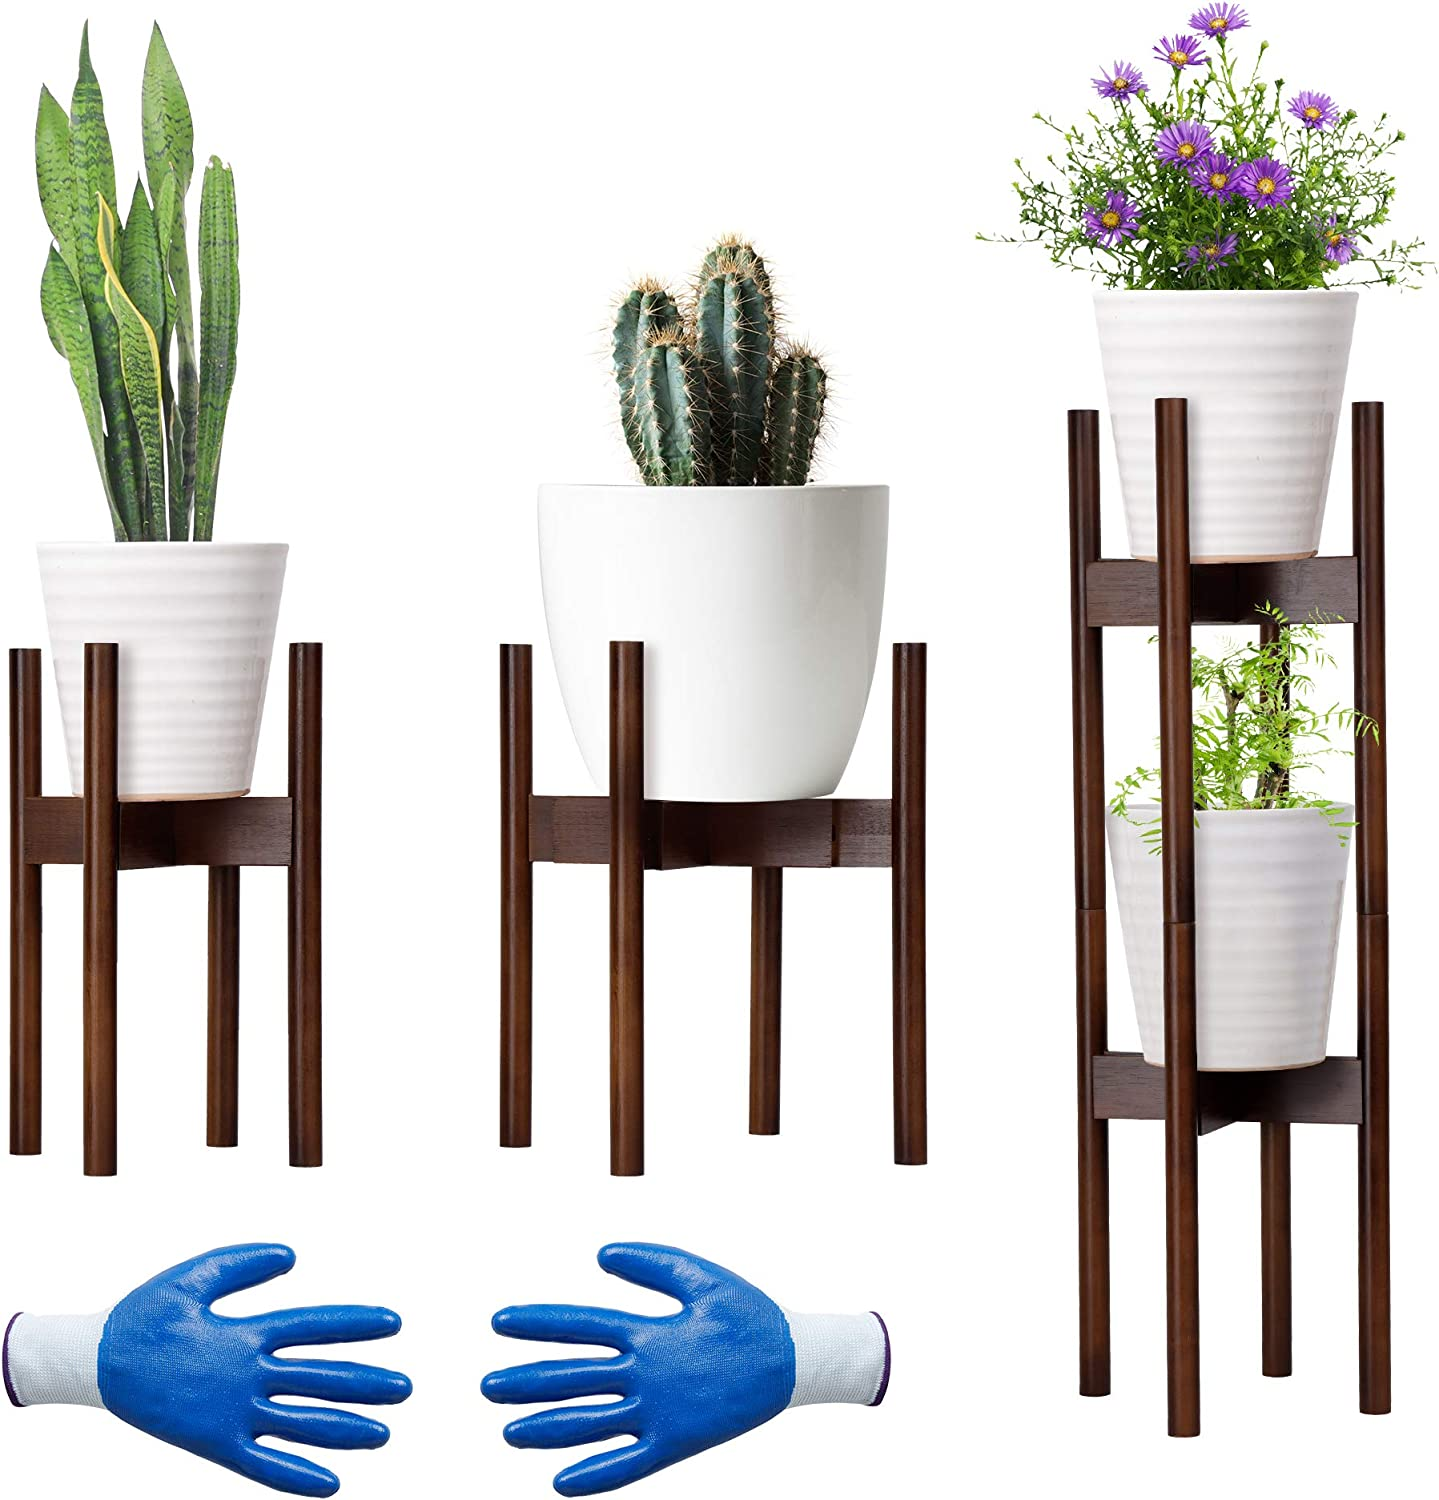 Mid-Century Modern Bamboo Plant with Stands Gardening Popular low-pricing brand in the world Gloves